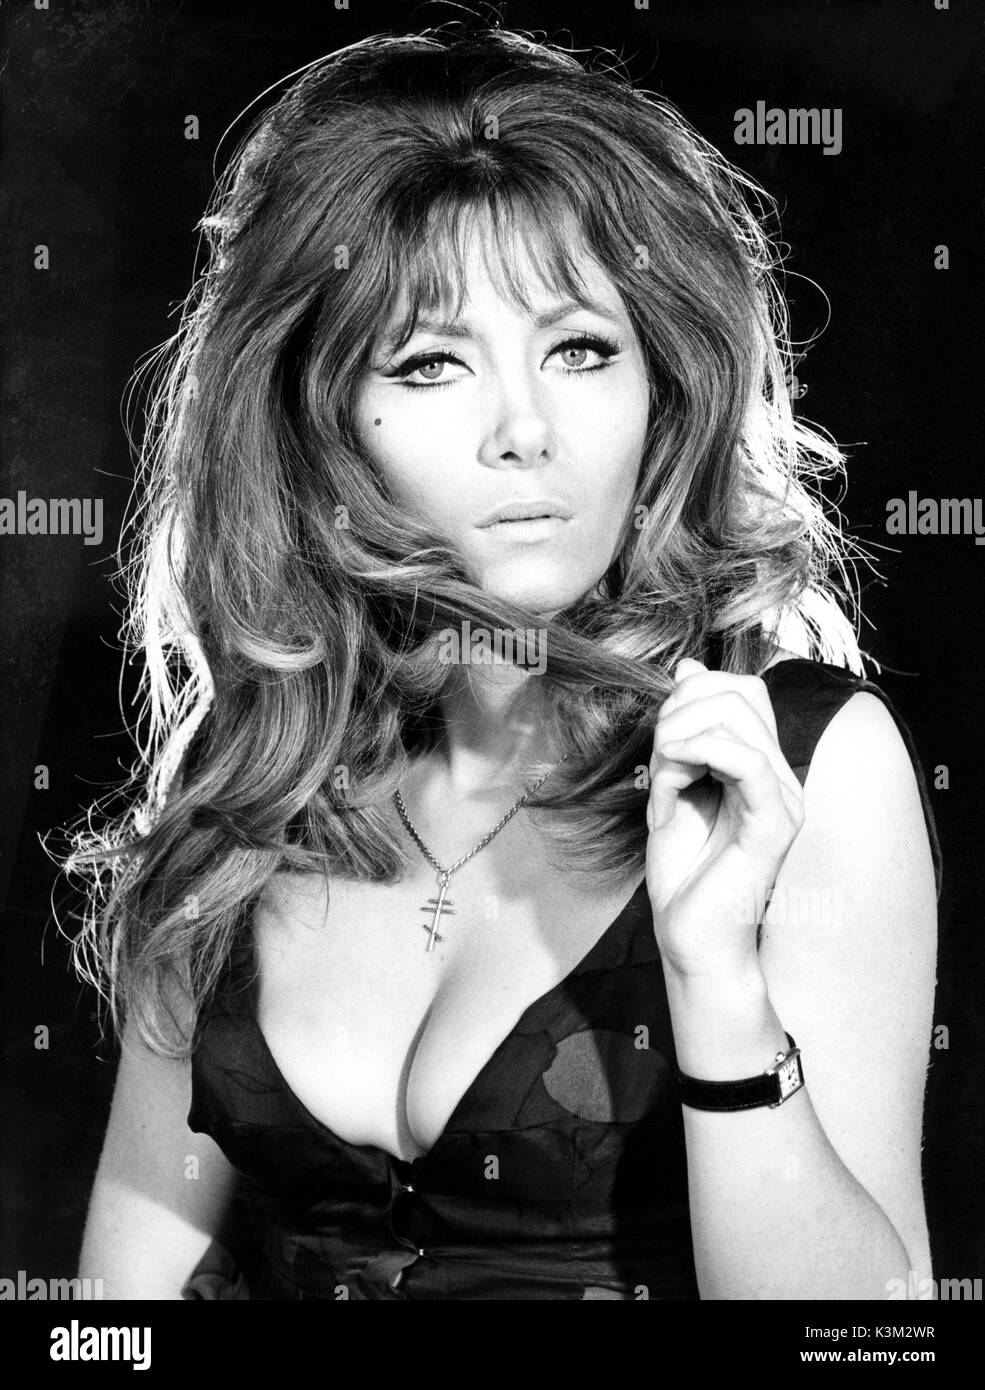 Ingrid Pitt nudes (92 foto and video), Sexy, Bikini, Instagram, cameltoe 2015